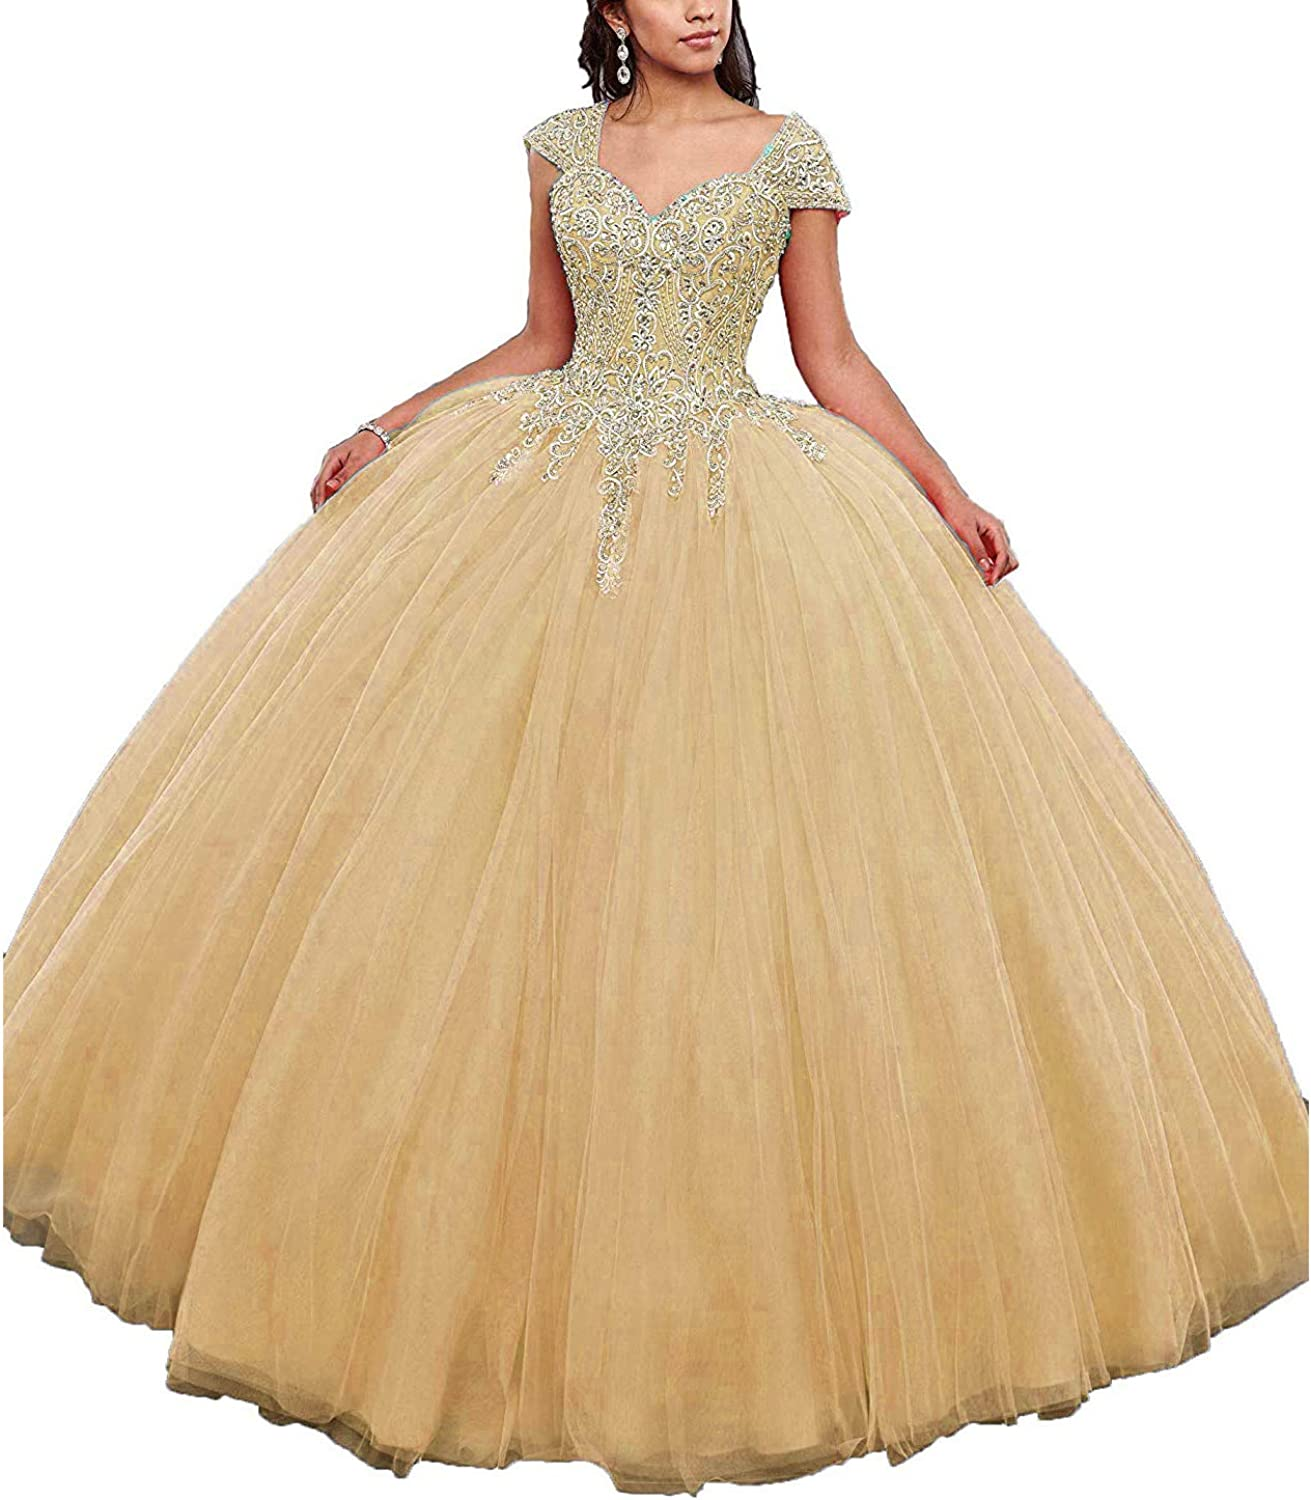 20KyleBird Women's Sweetheart Beaded Quinceanera Dresses with Jacket Ball Gown Tulle Appliques Sweet 15 Dresses